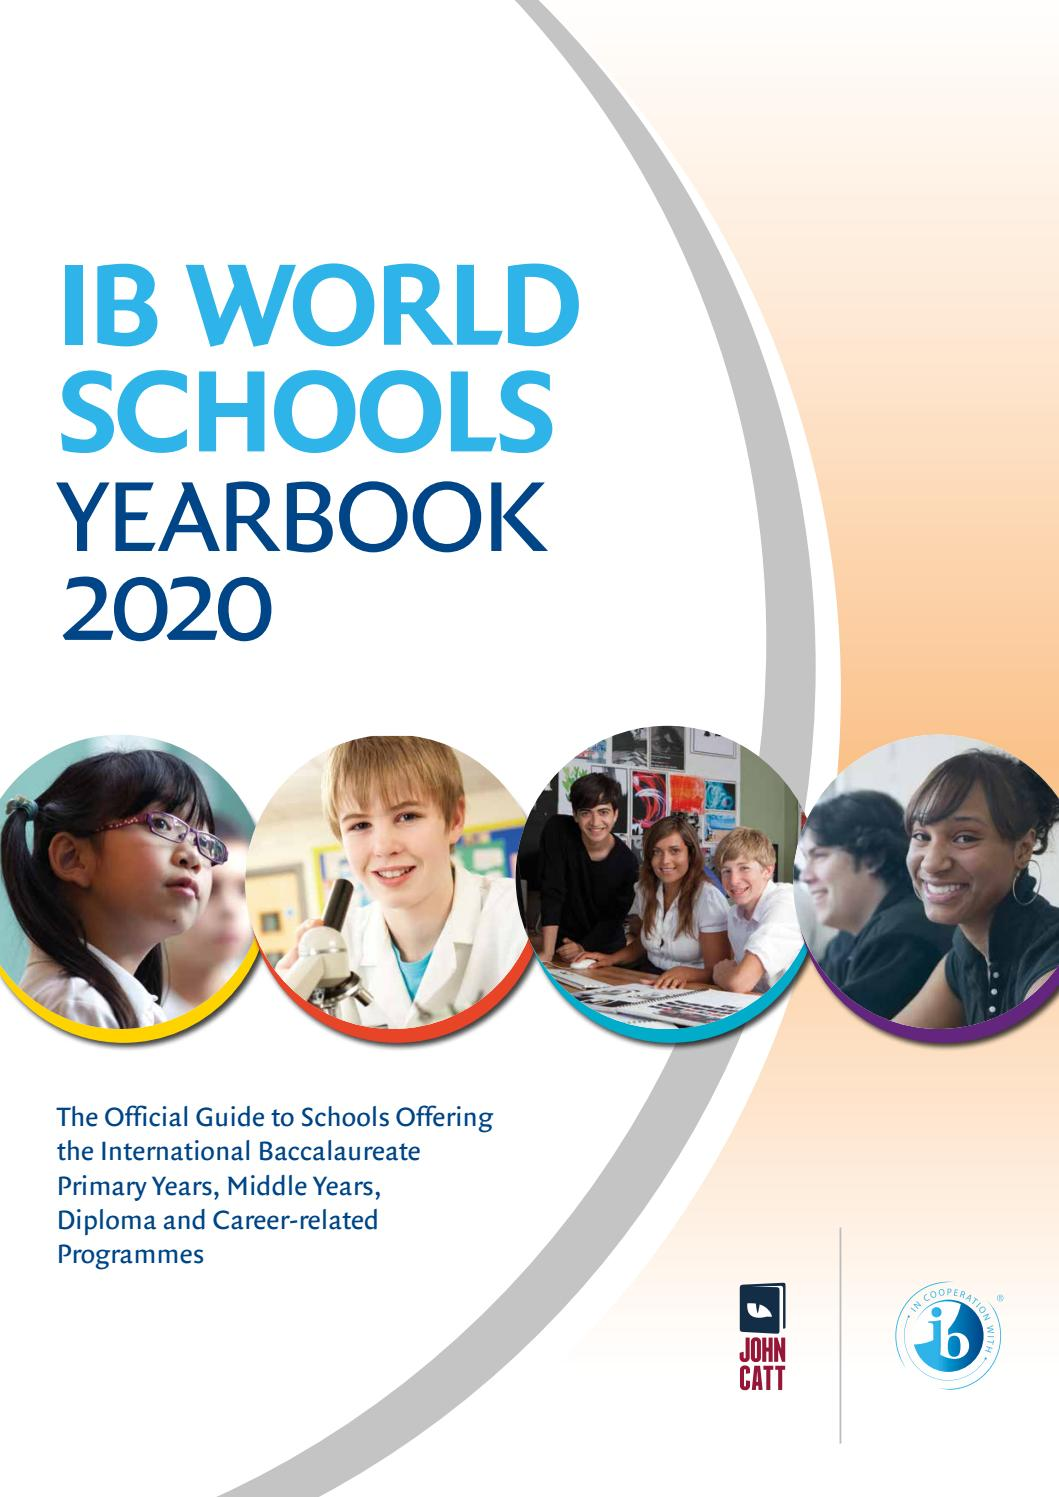 IB World Schools Yearbook 2020 By John Catt Educational Issuu